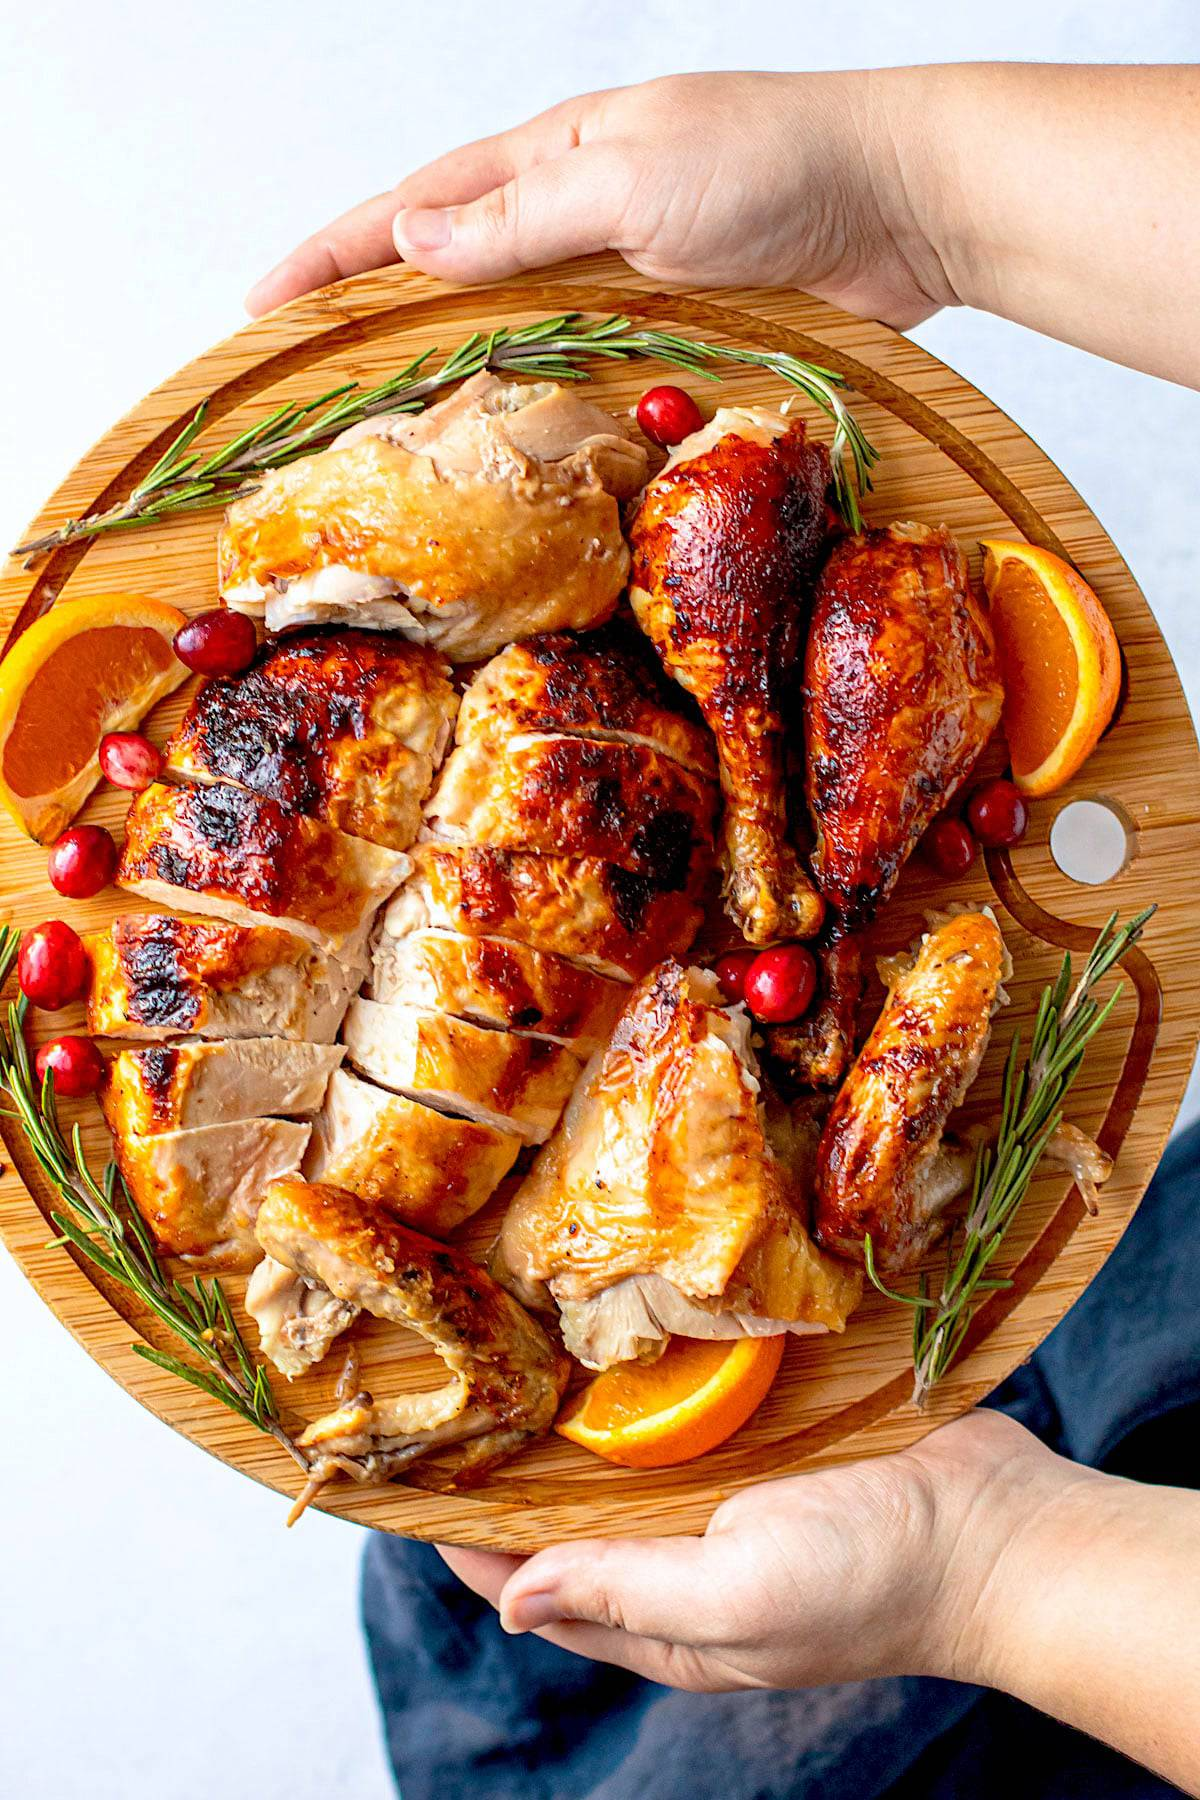 A cut up holiday roasted chicken.